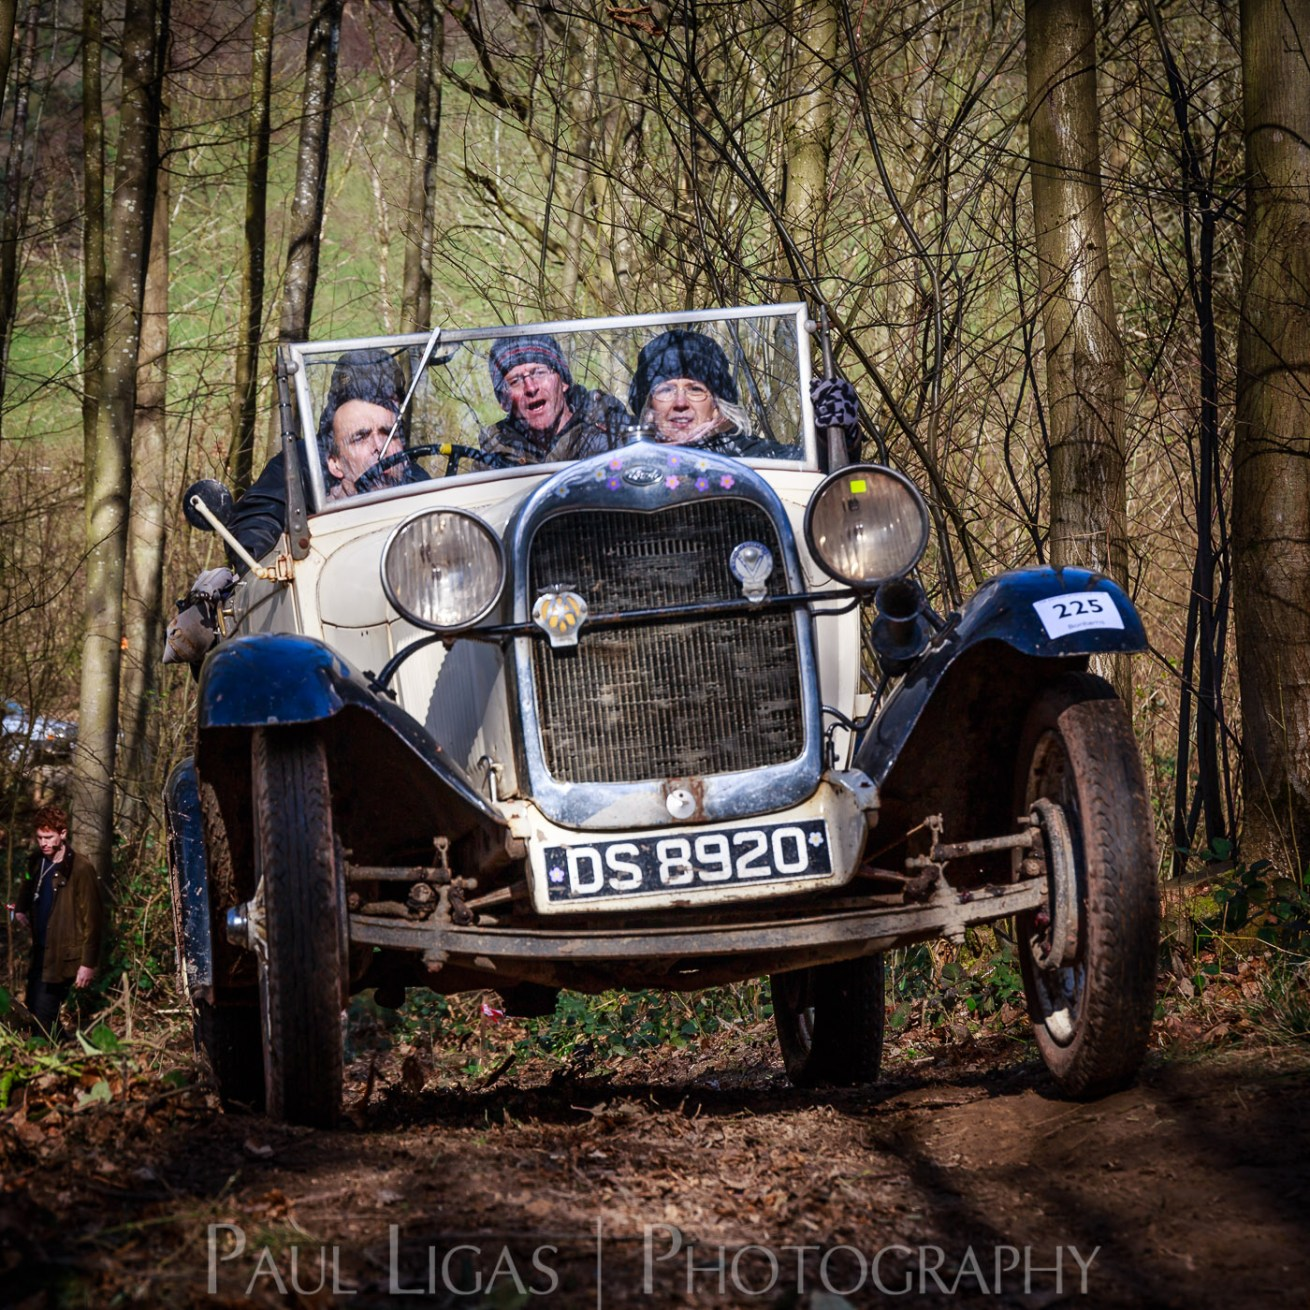 Vintage car hill climbing, Ledbury, Herefordshire event photographer photography 9301